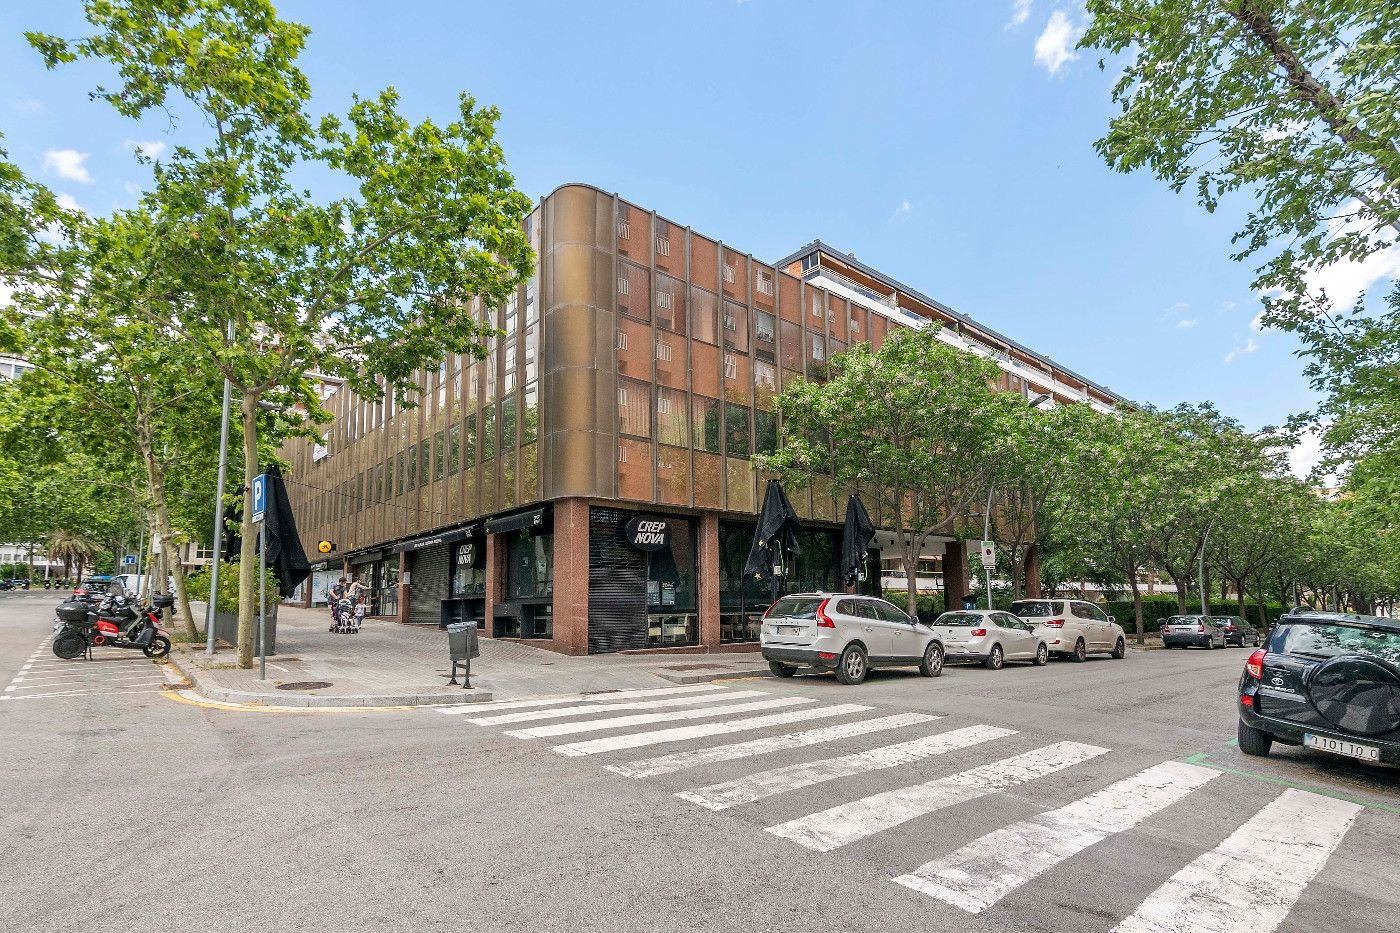 Office space in Carrer doctor august pi i sunyer, 12. De 60m2 con parquing